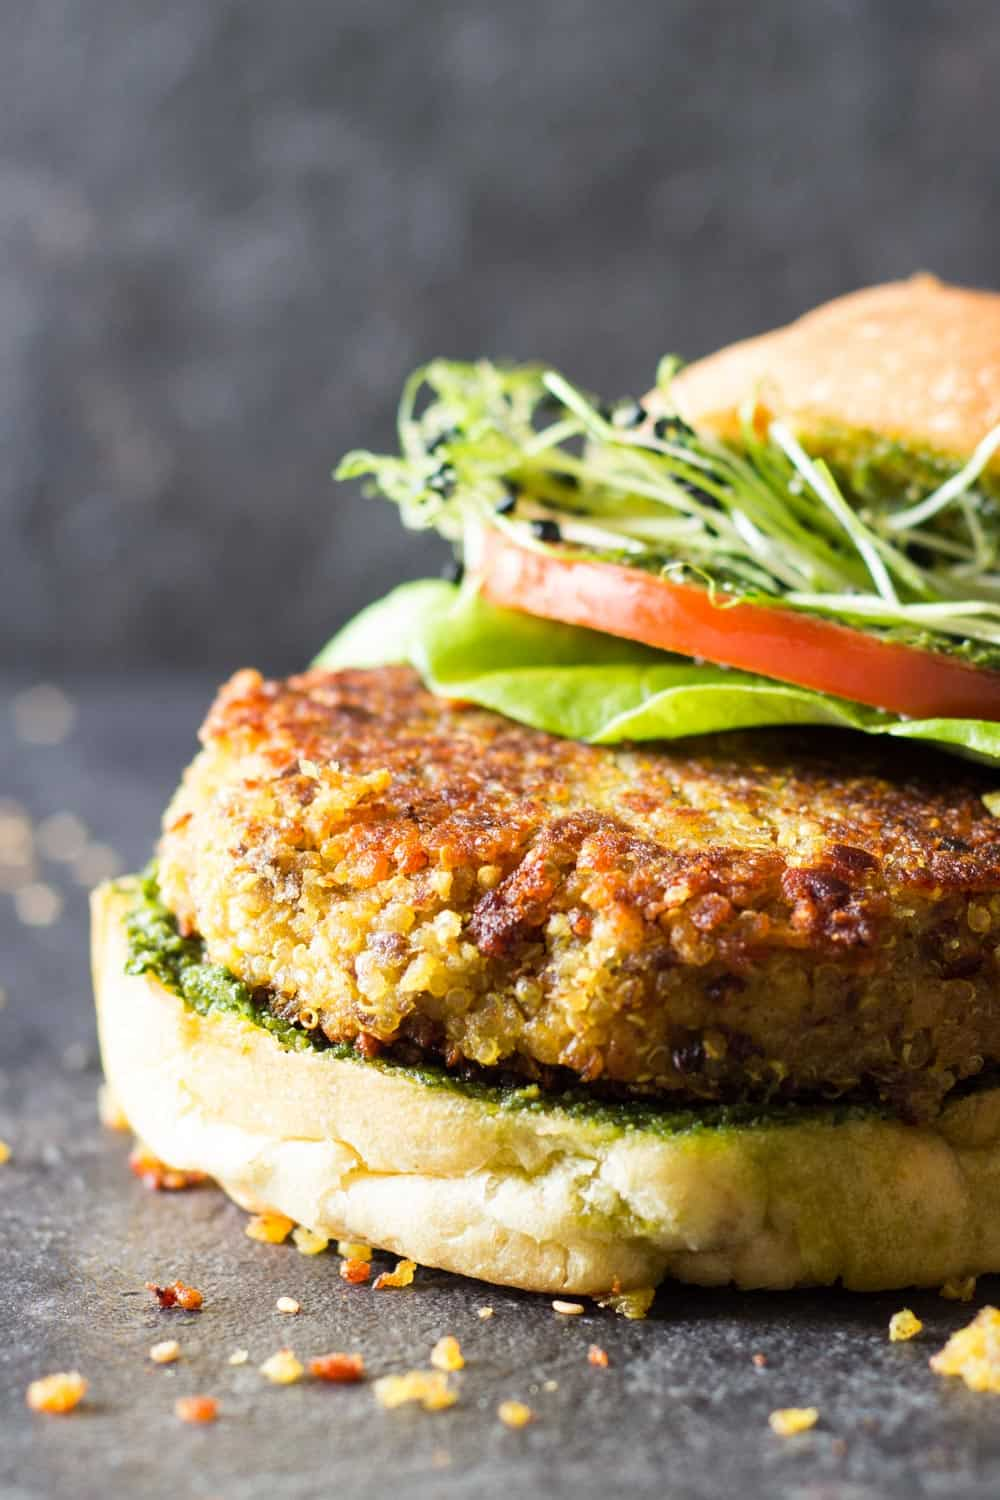 Detail of quinoa veggie burger to show texture, in a bun with lettuce, tomato, micro greens and basil pesto sauce.